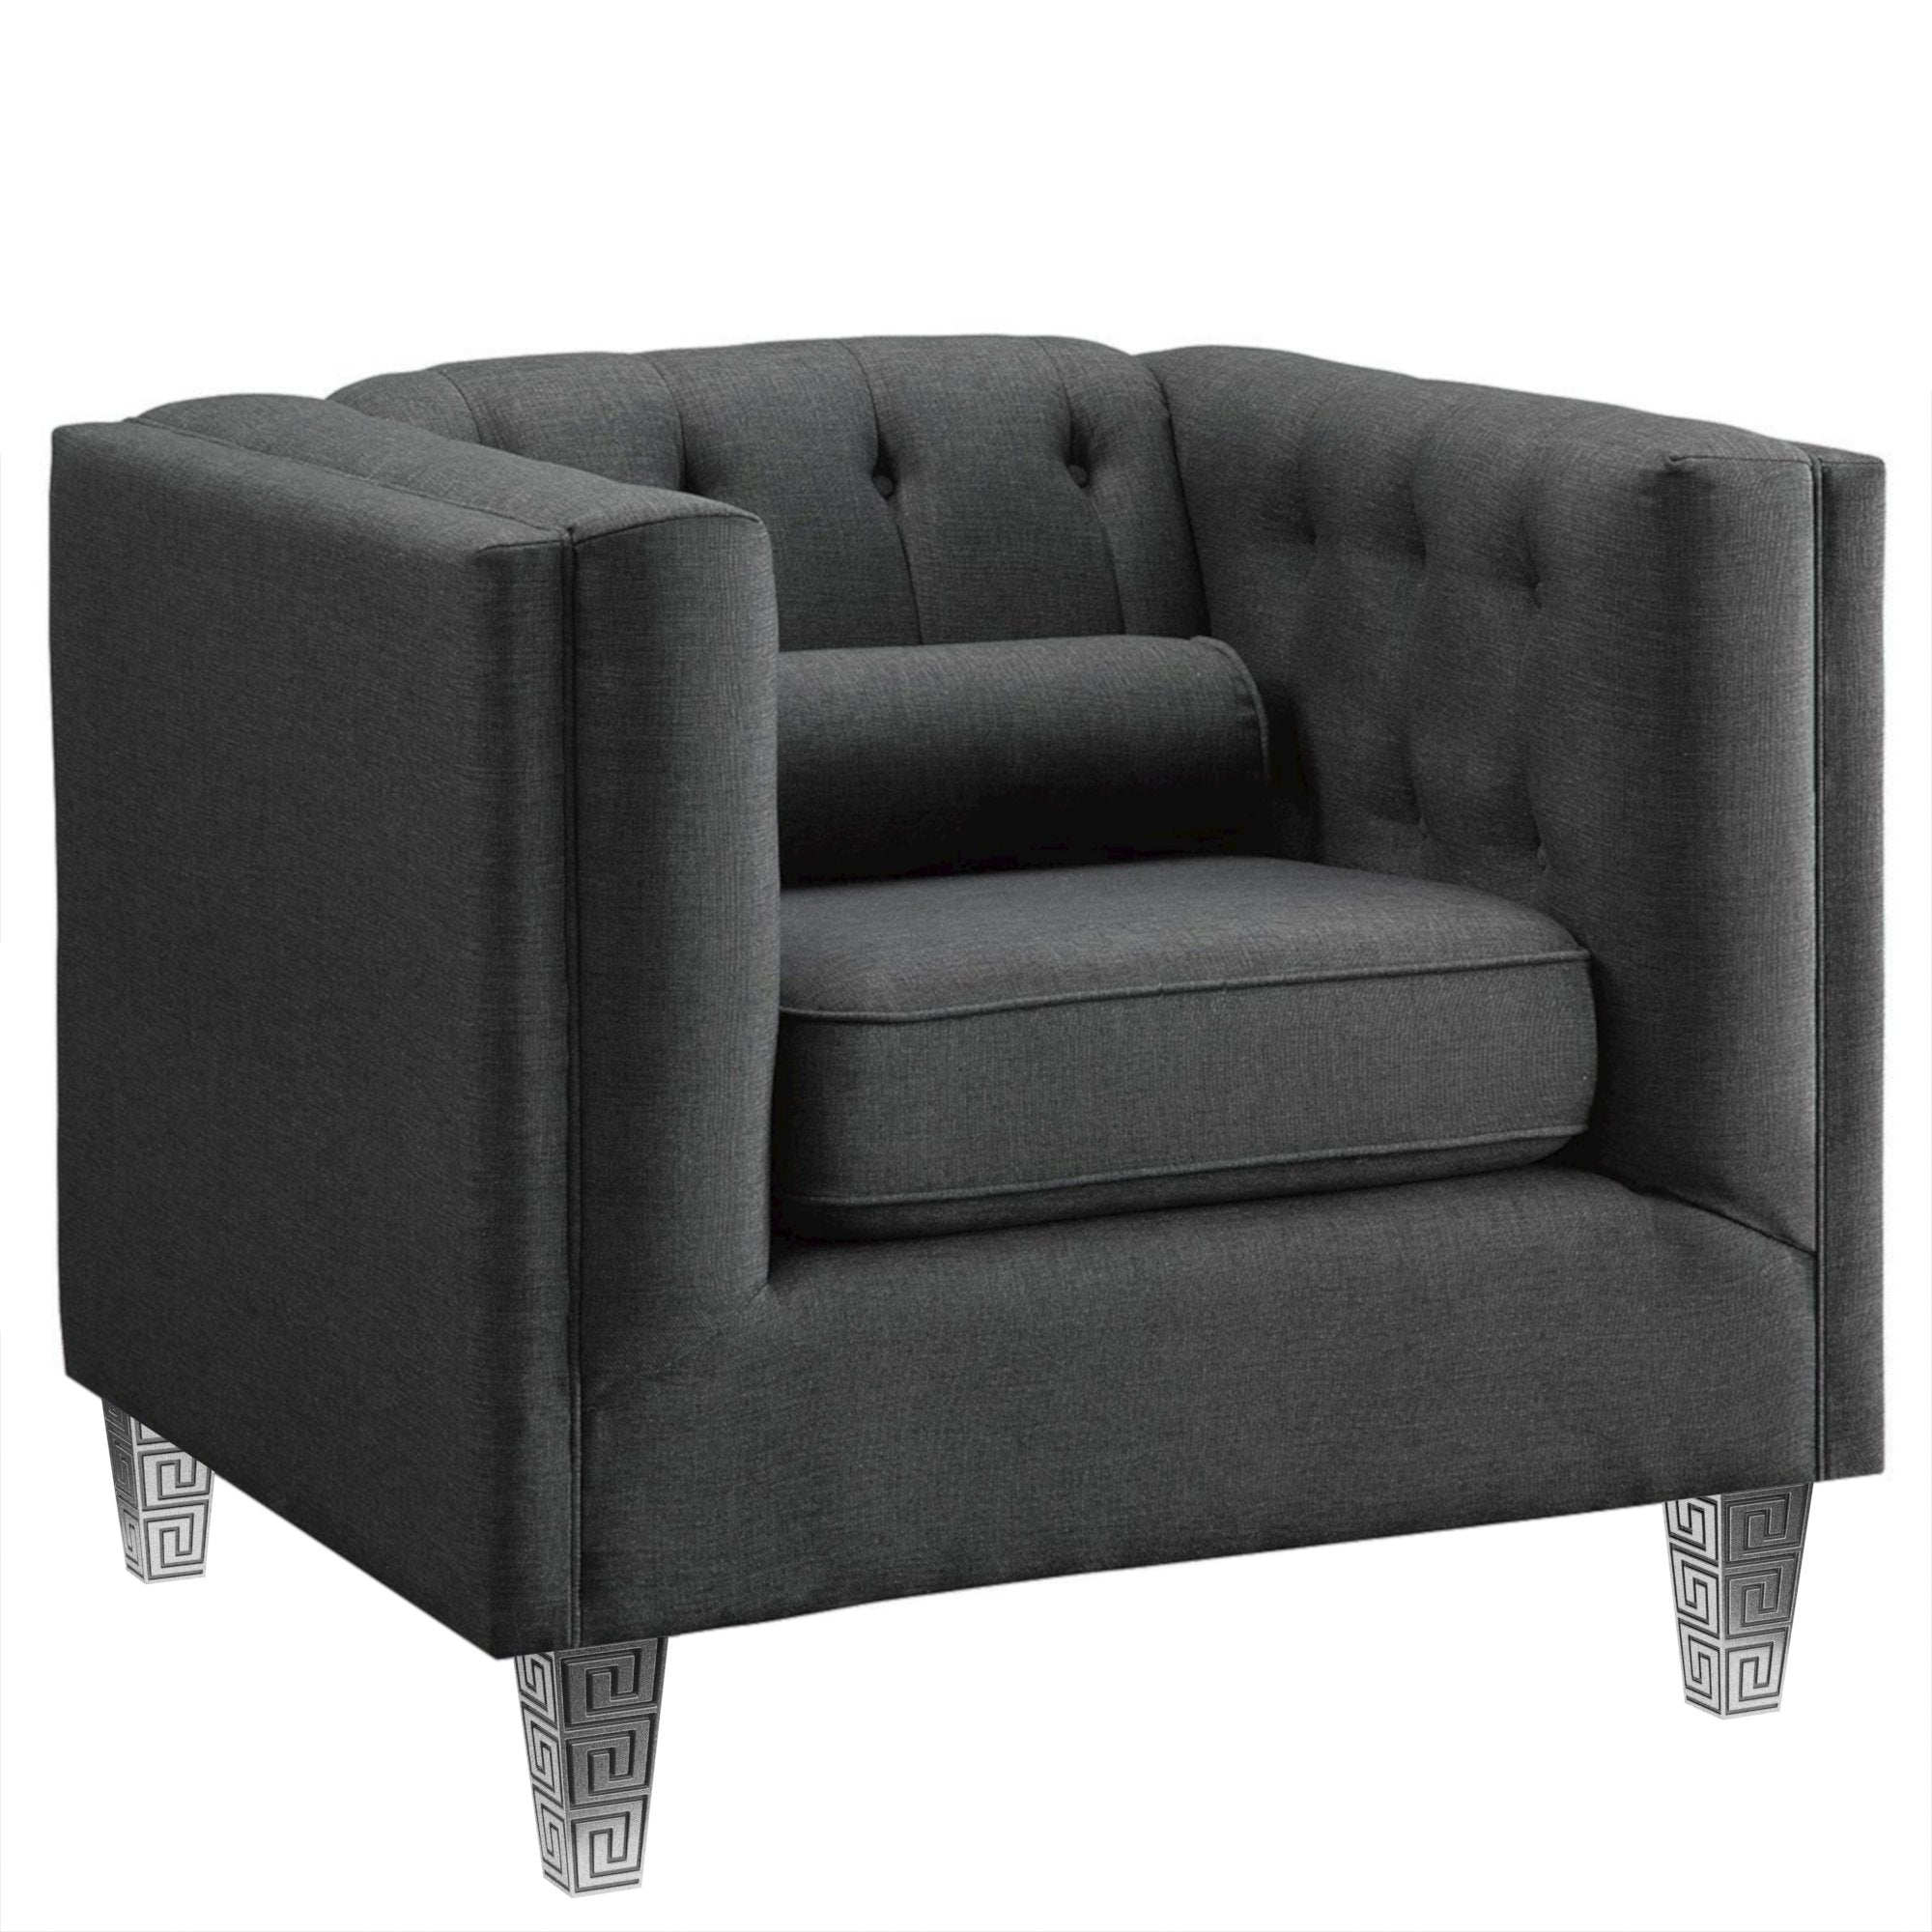 Tufted Gray Cannes Chair